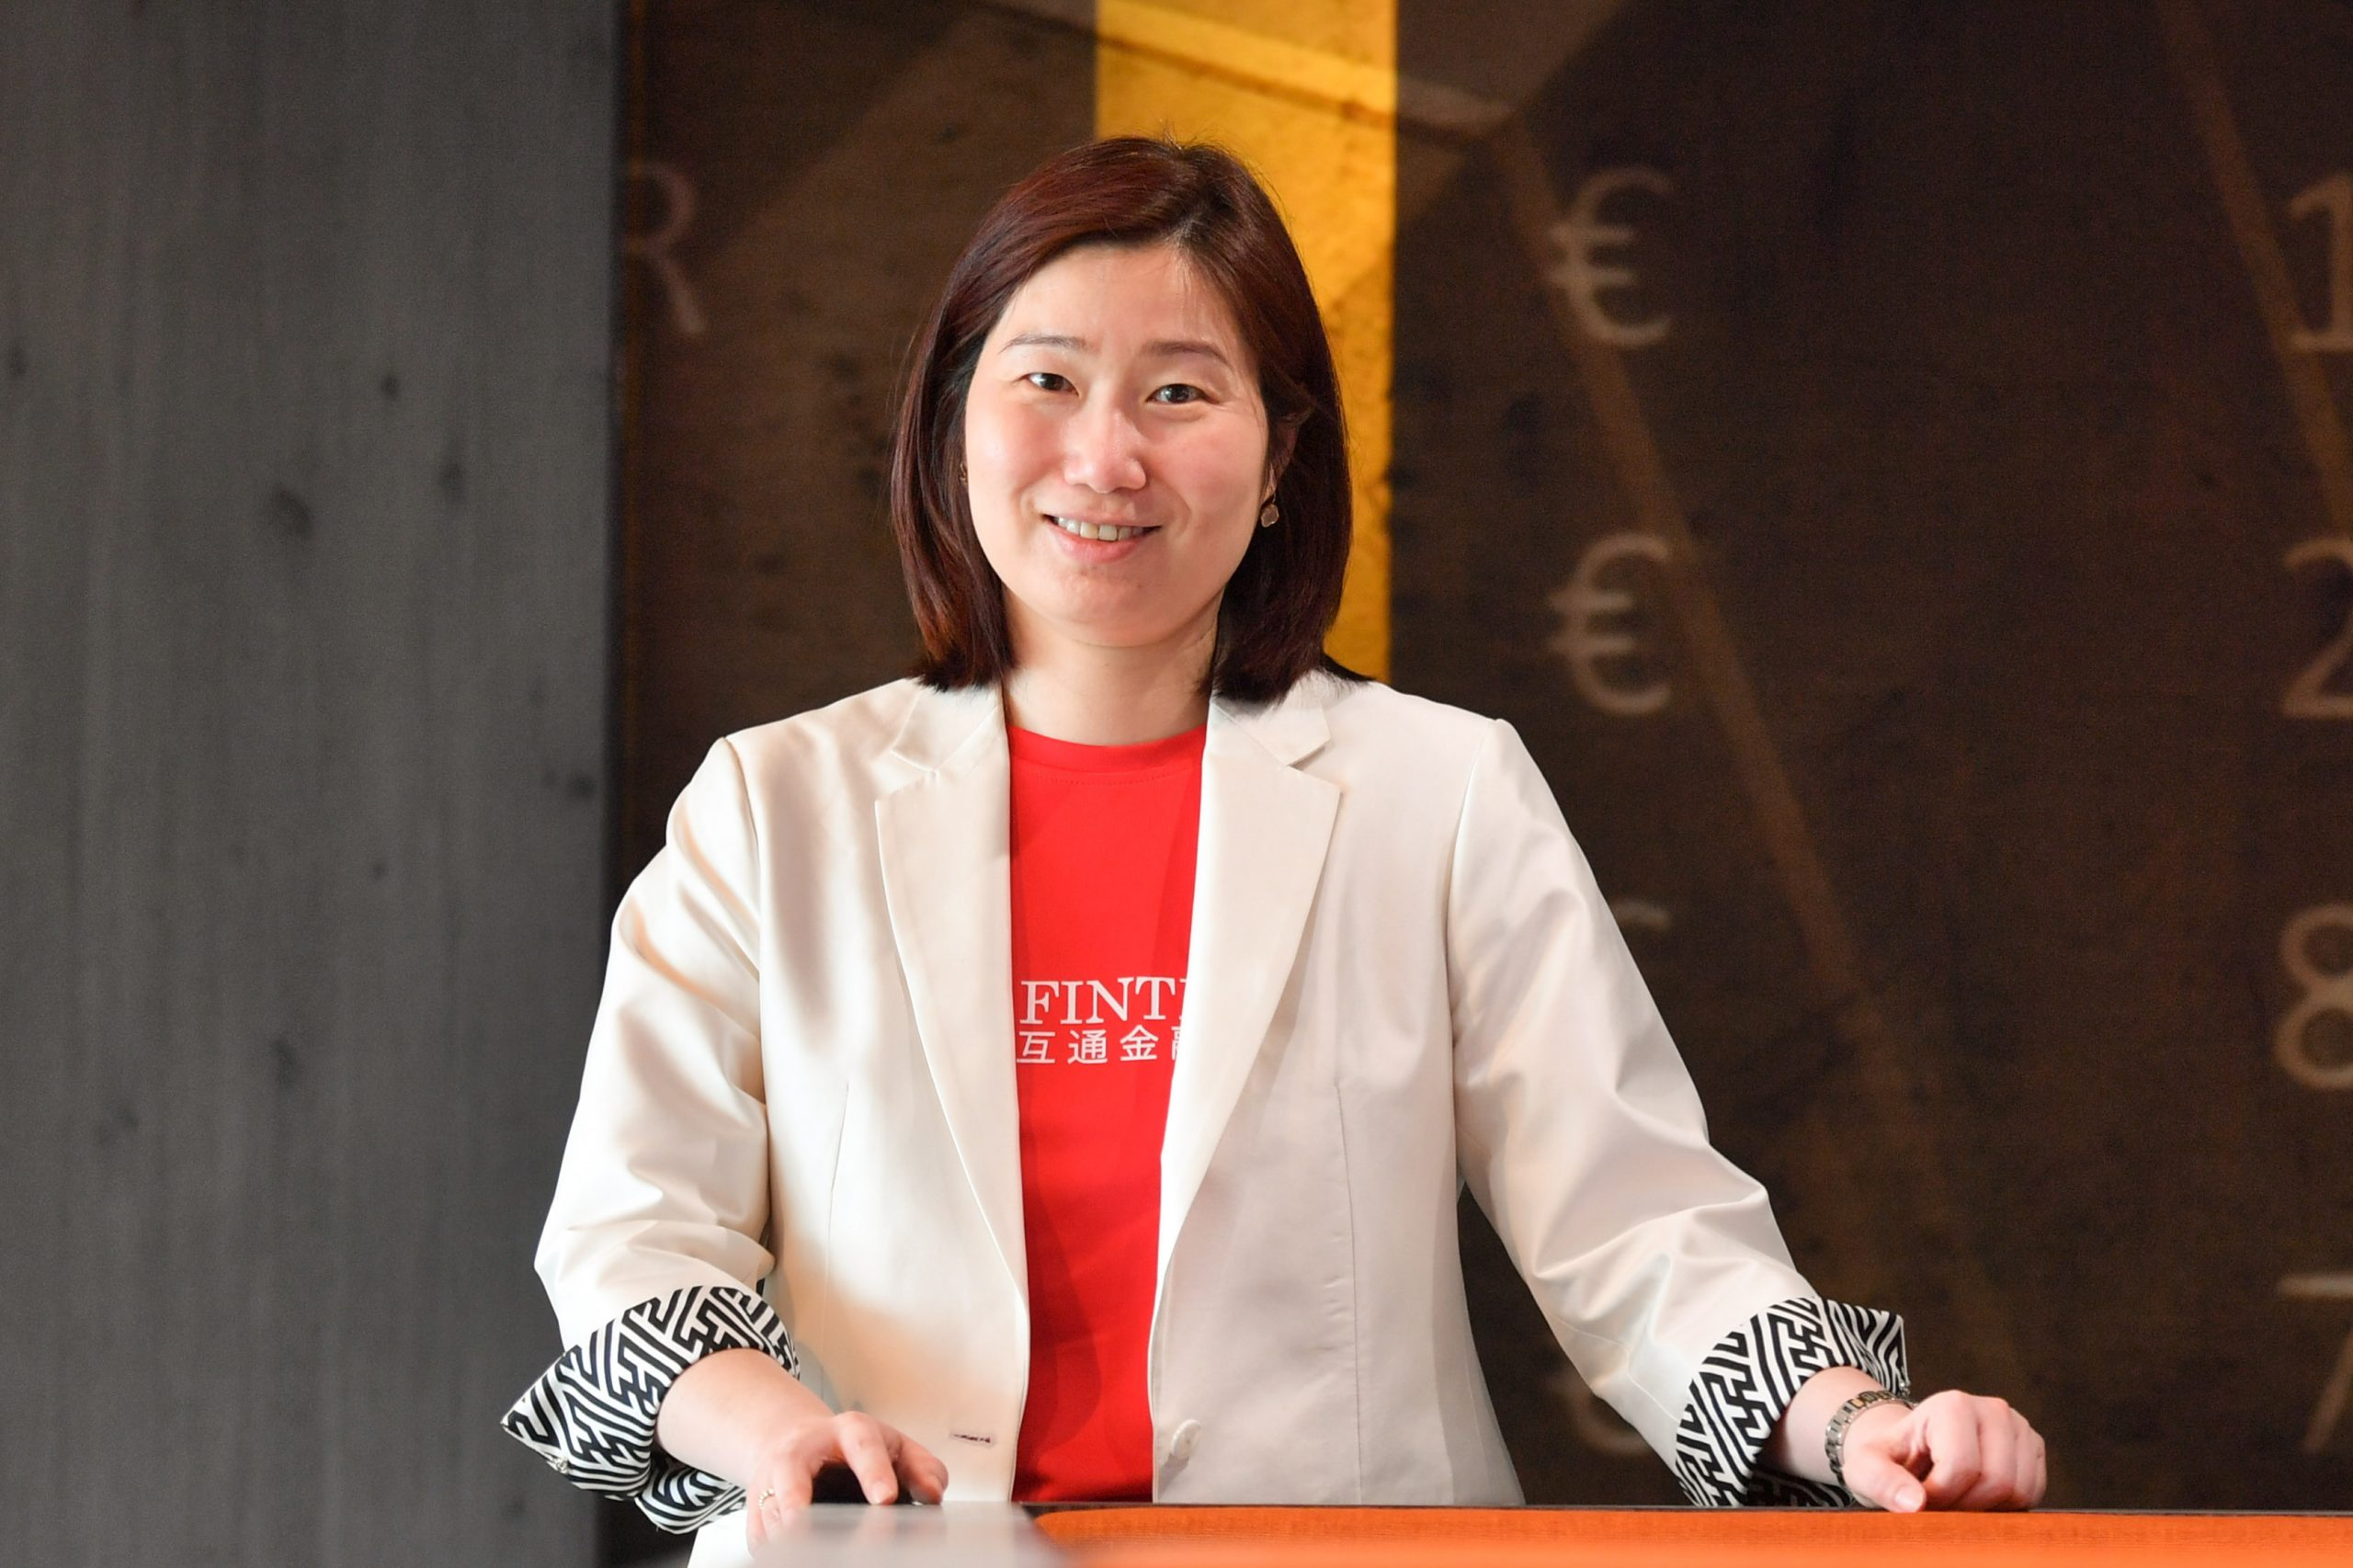 Irene Wong - The FinTech icon giving back to society